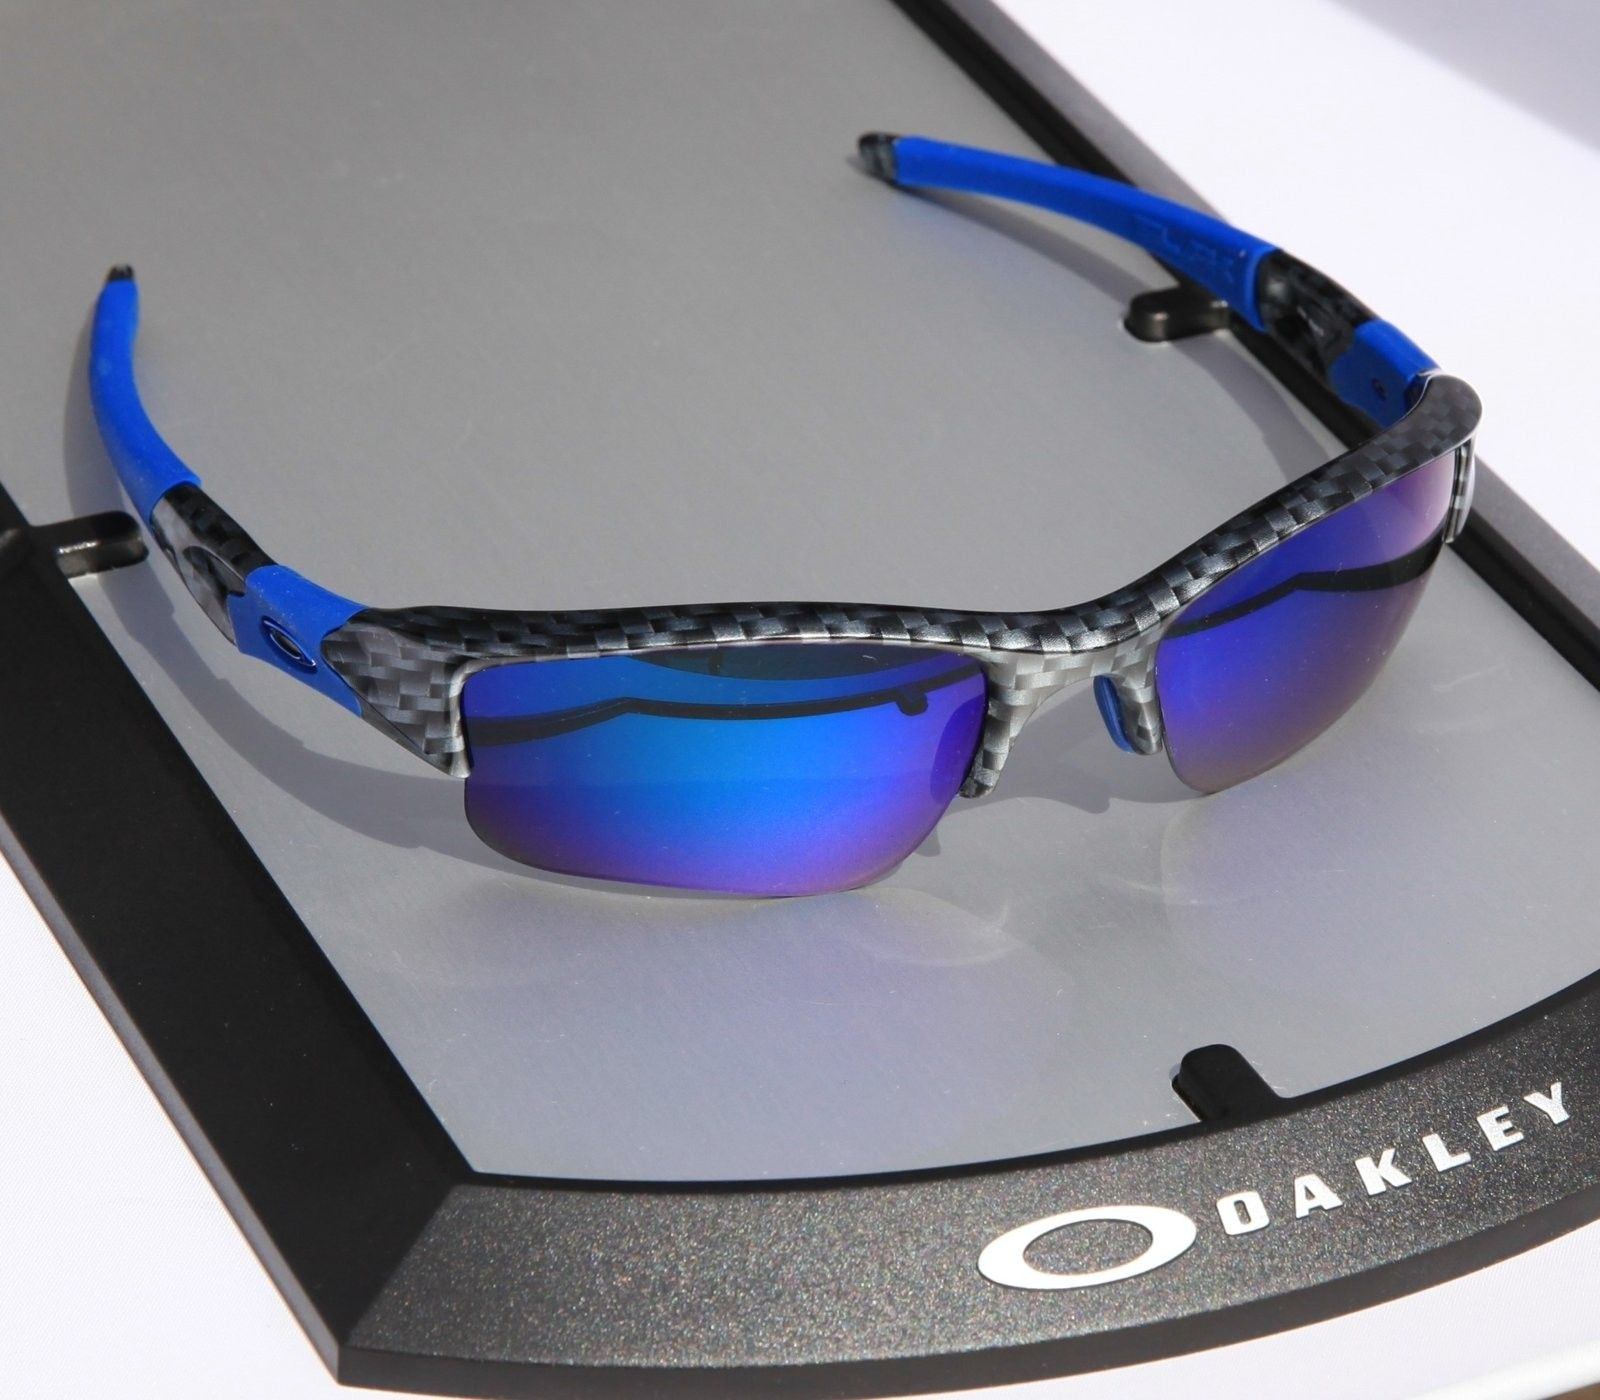 c71a7083de Member NuttyOAK13Y is at it again with these Oakley Carbon Fiber Flak  Jacket Sunglasses  http